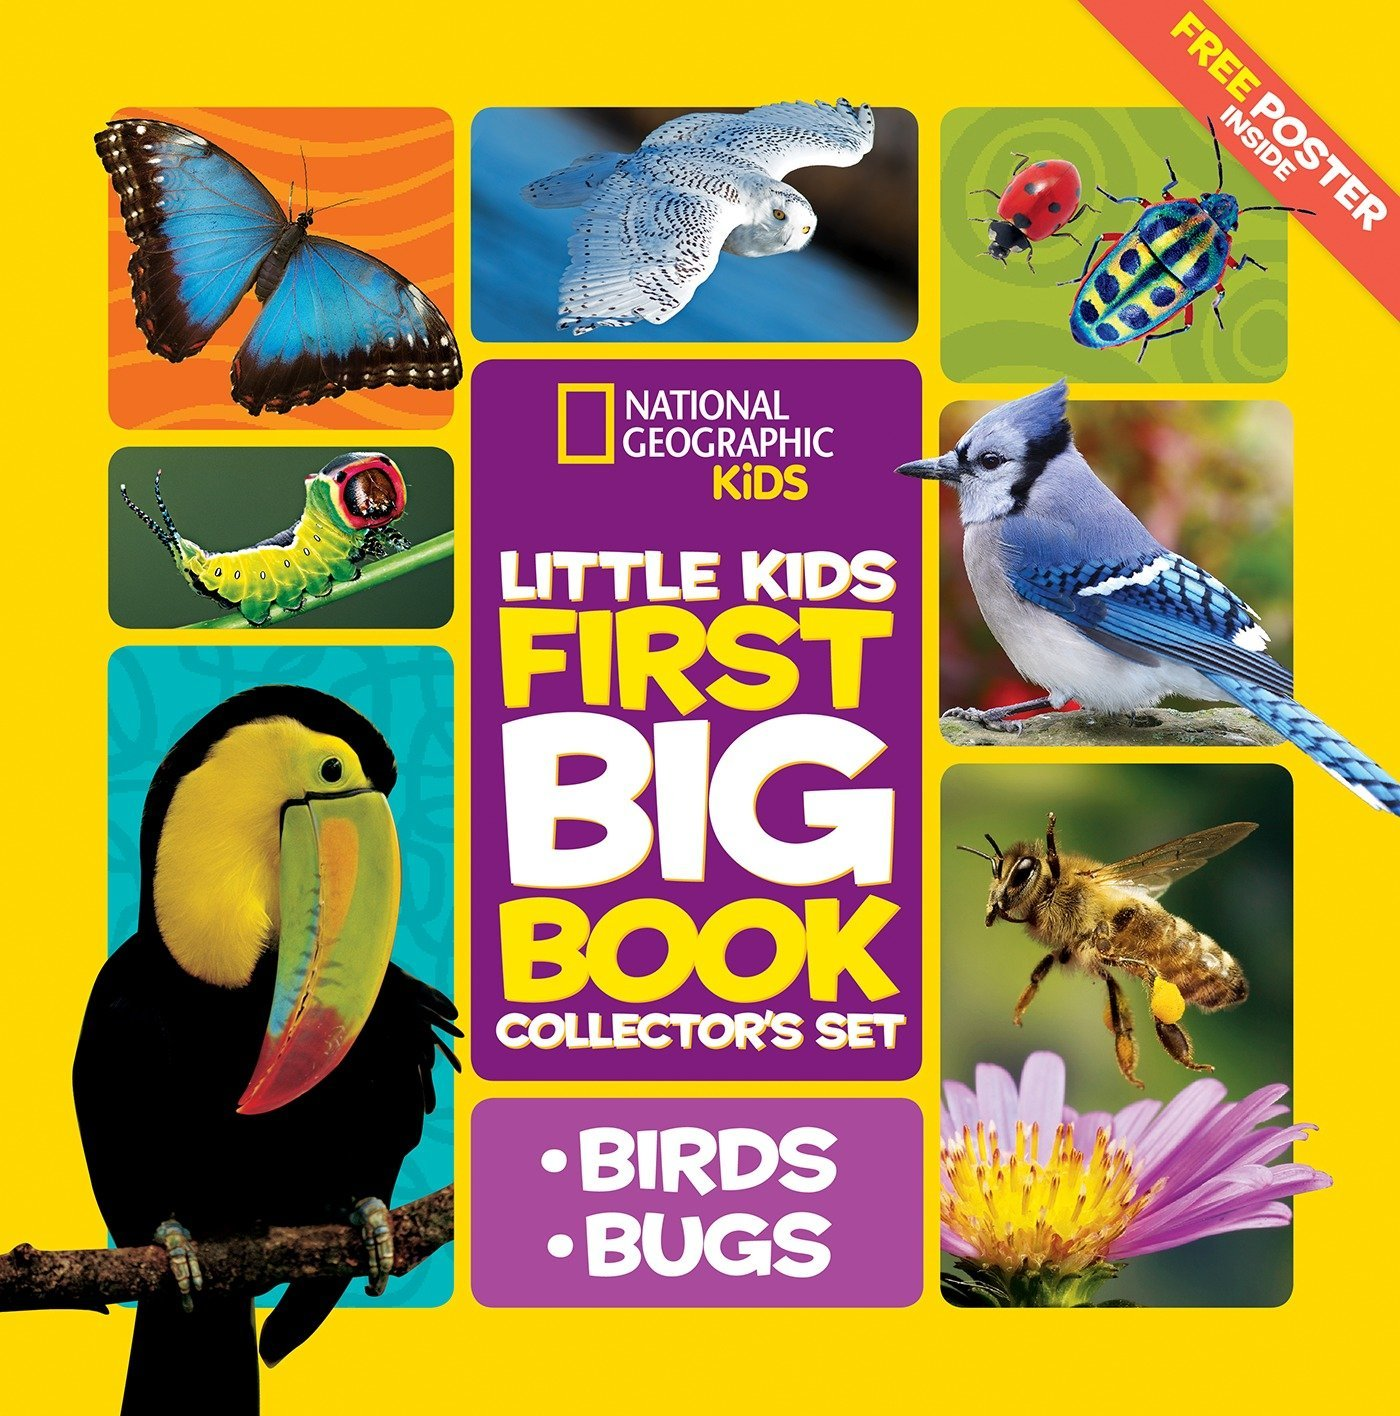 Little Kids First Big Book Collector's Set: Birds and Bugs PDF